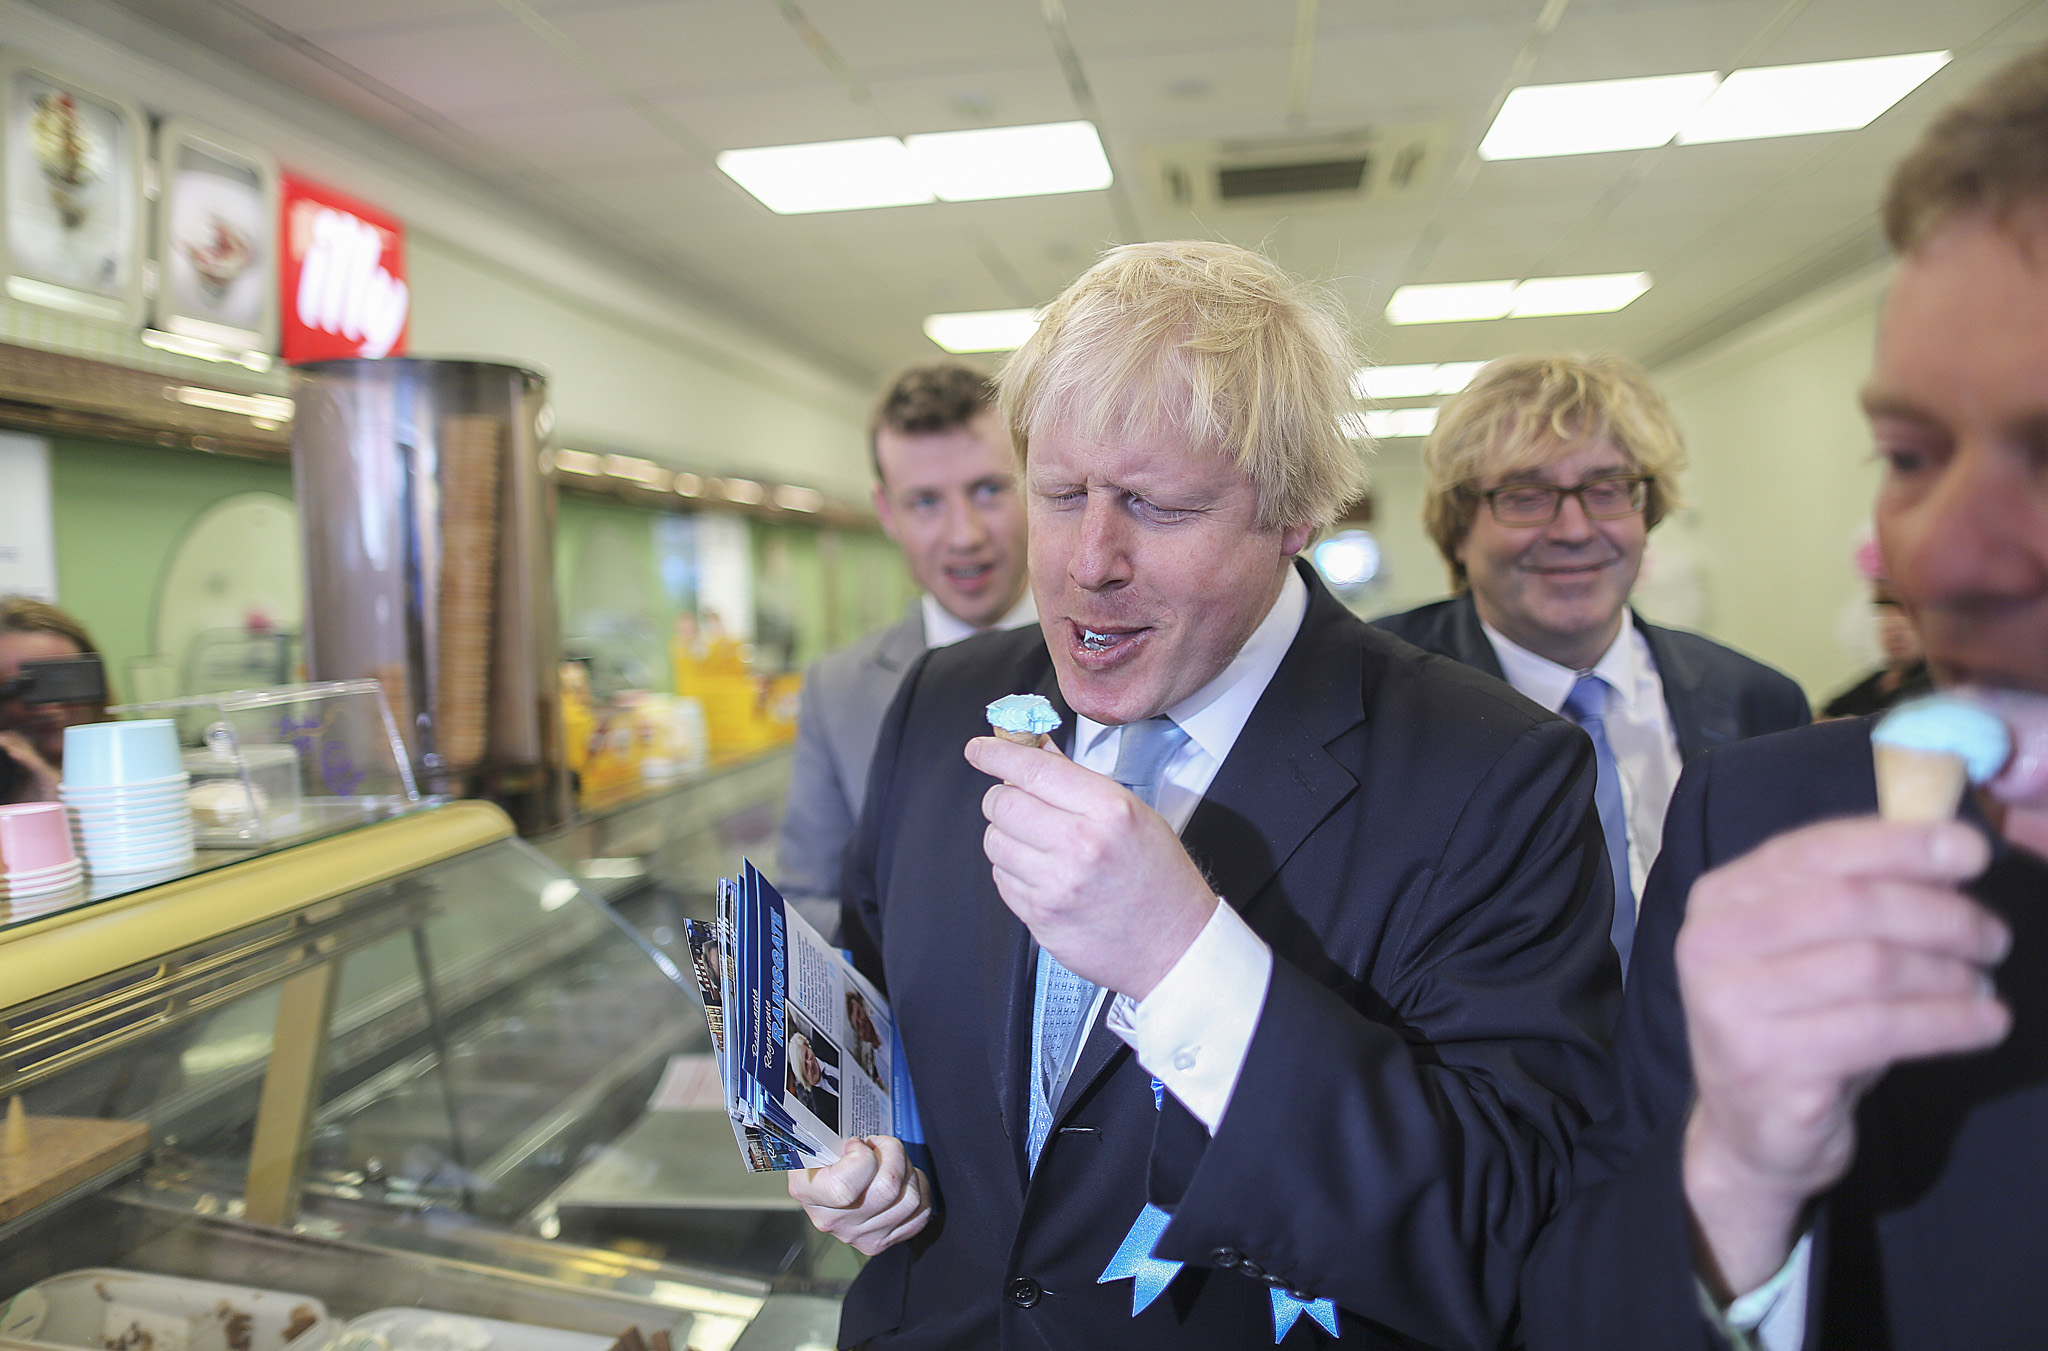 Boris Johnson today campaigned in Ramsgate, in the Thanet South constituency on behalf of Conservative candidate, Criag McKinlay.